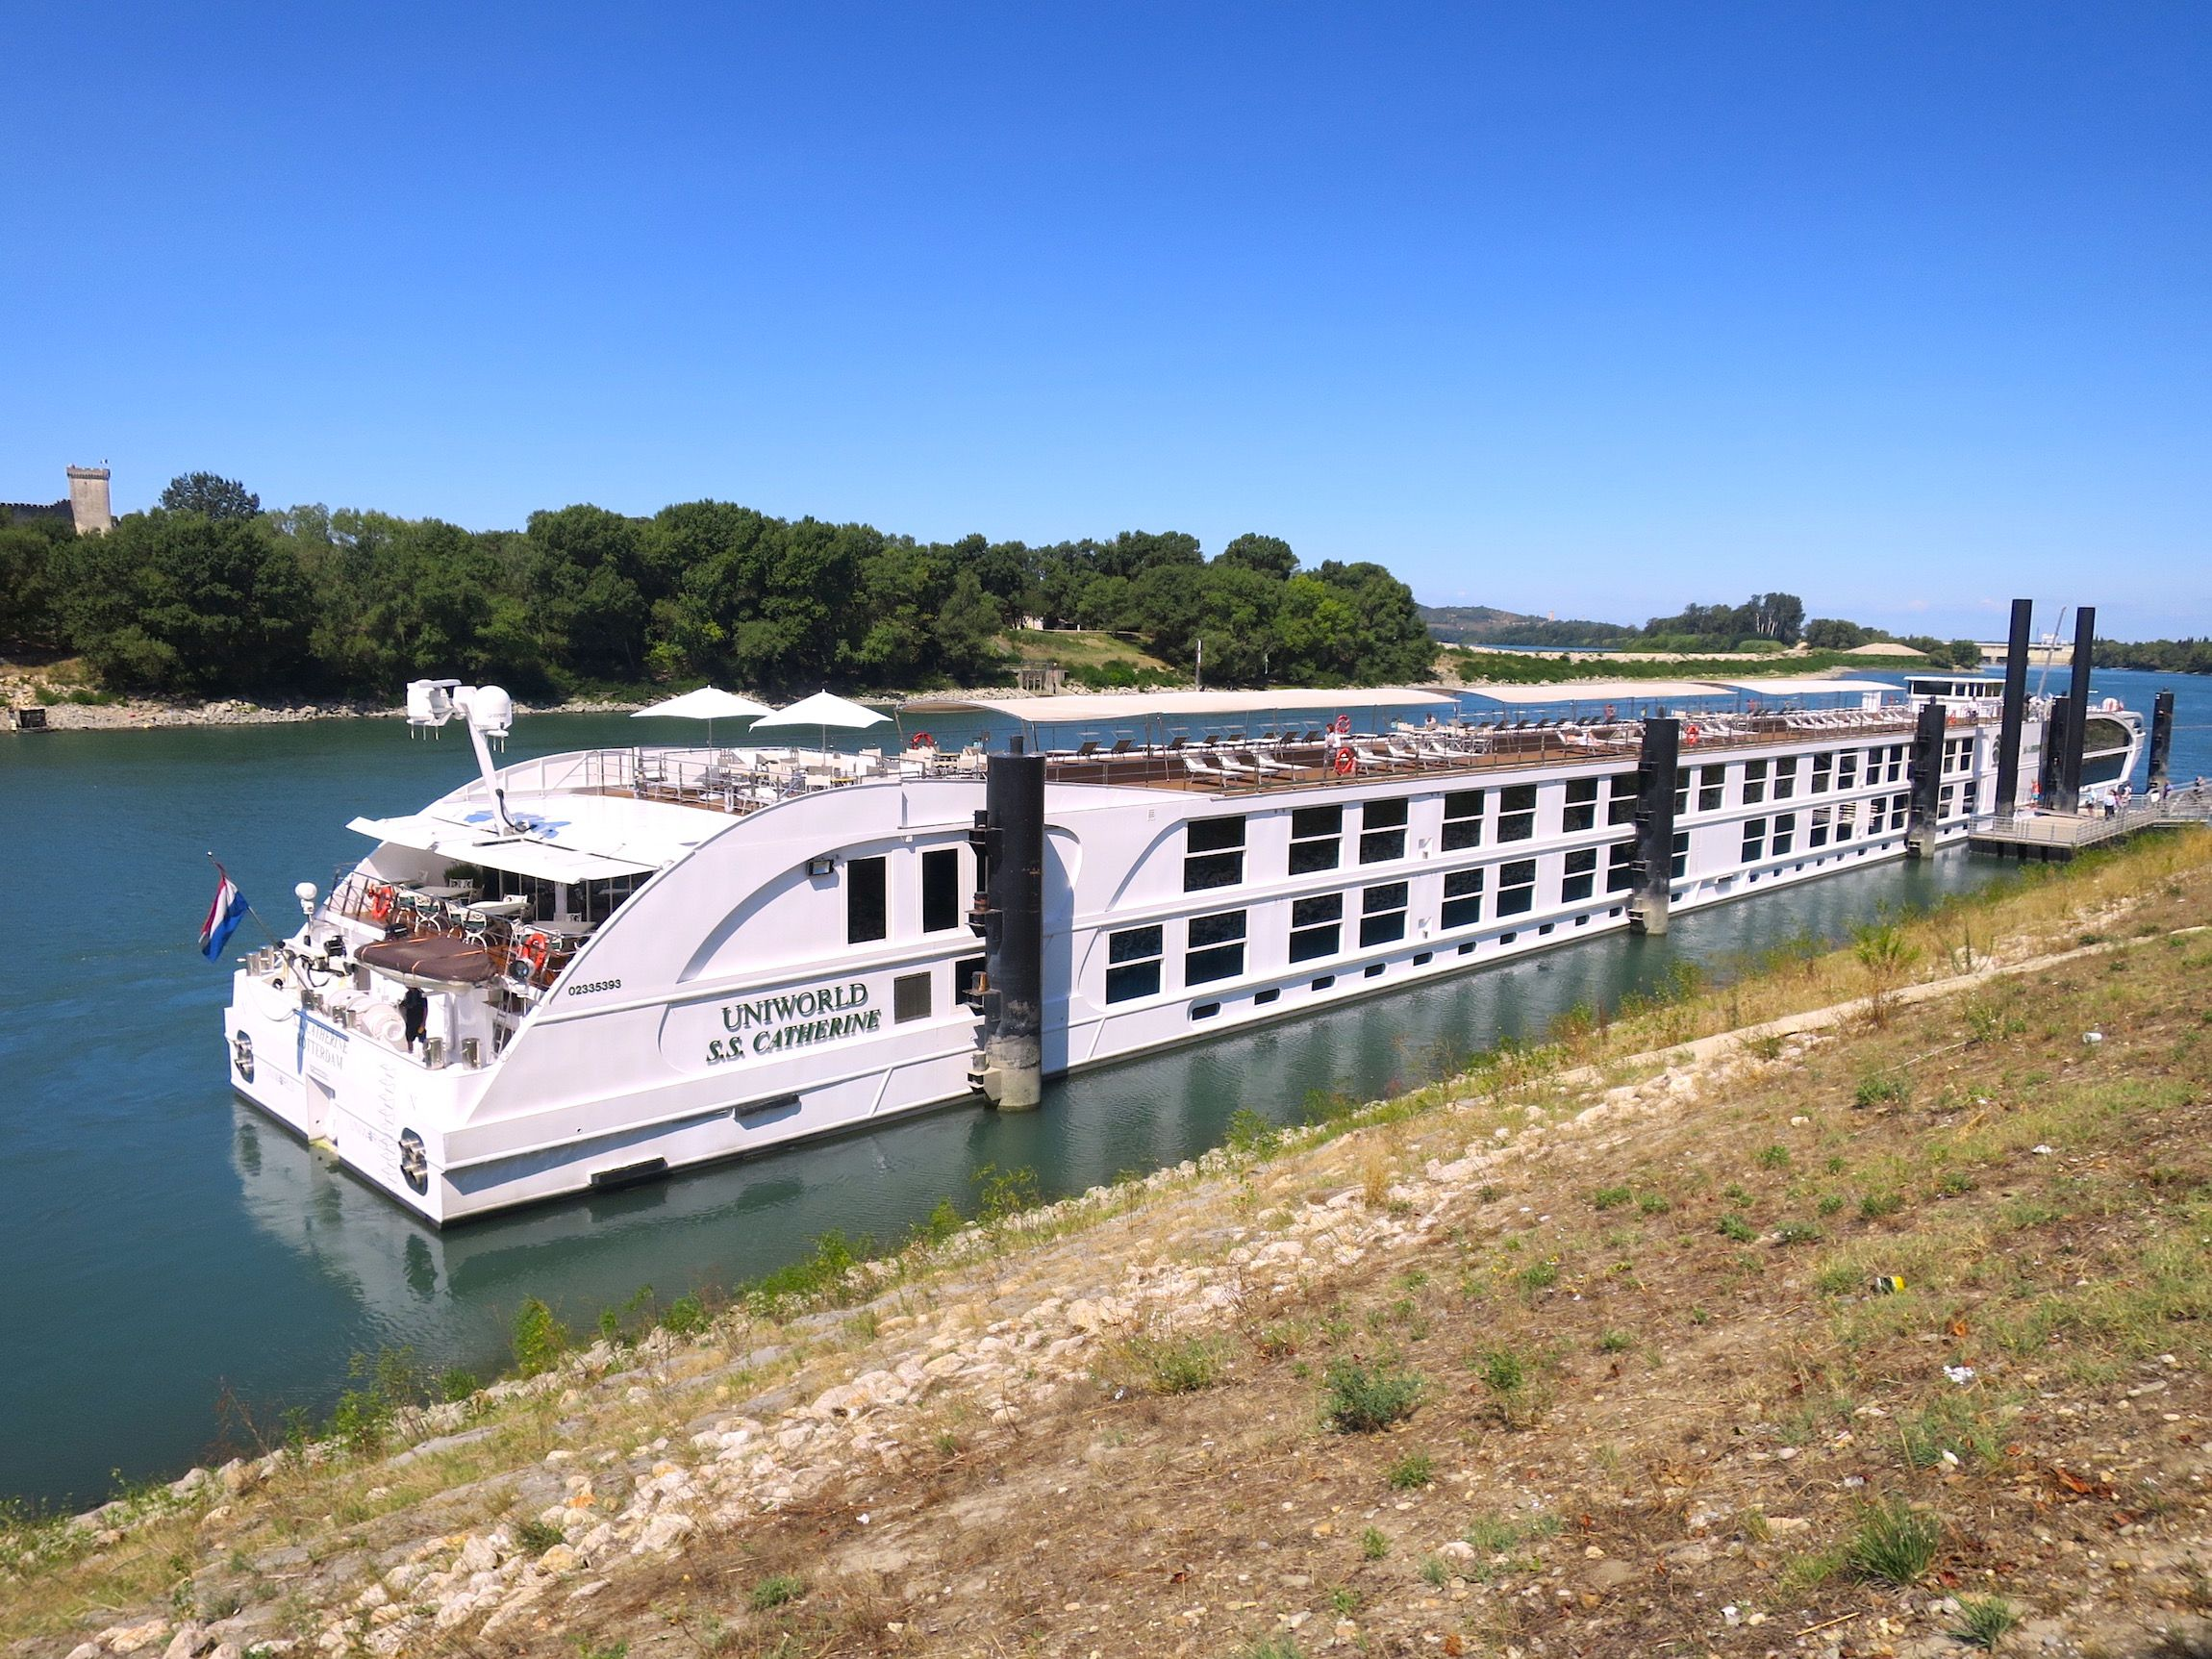 Cruising The Rhone River In Provence On Uniworlds SS Catherine - Ss catherine